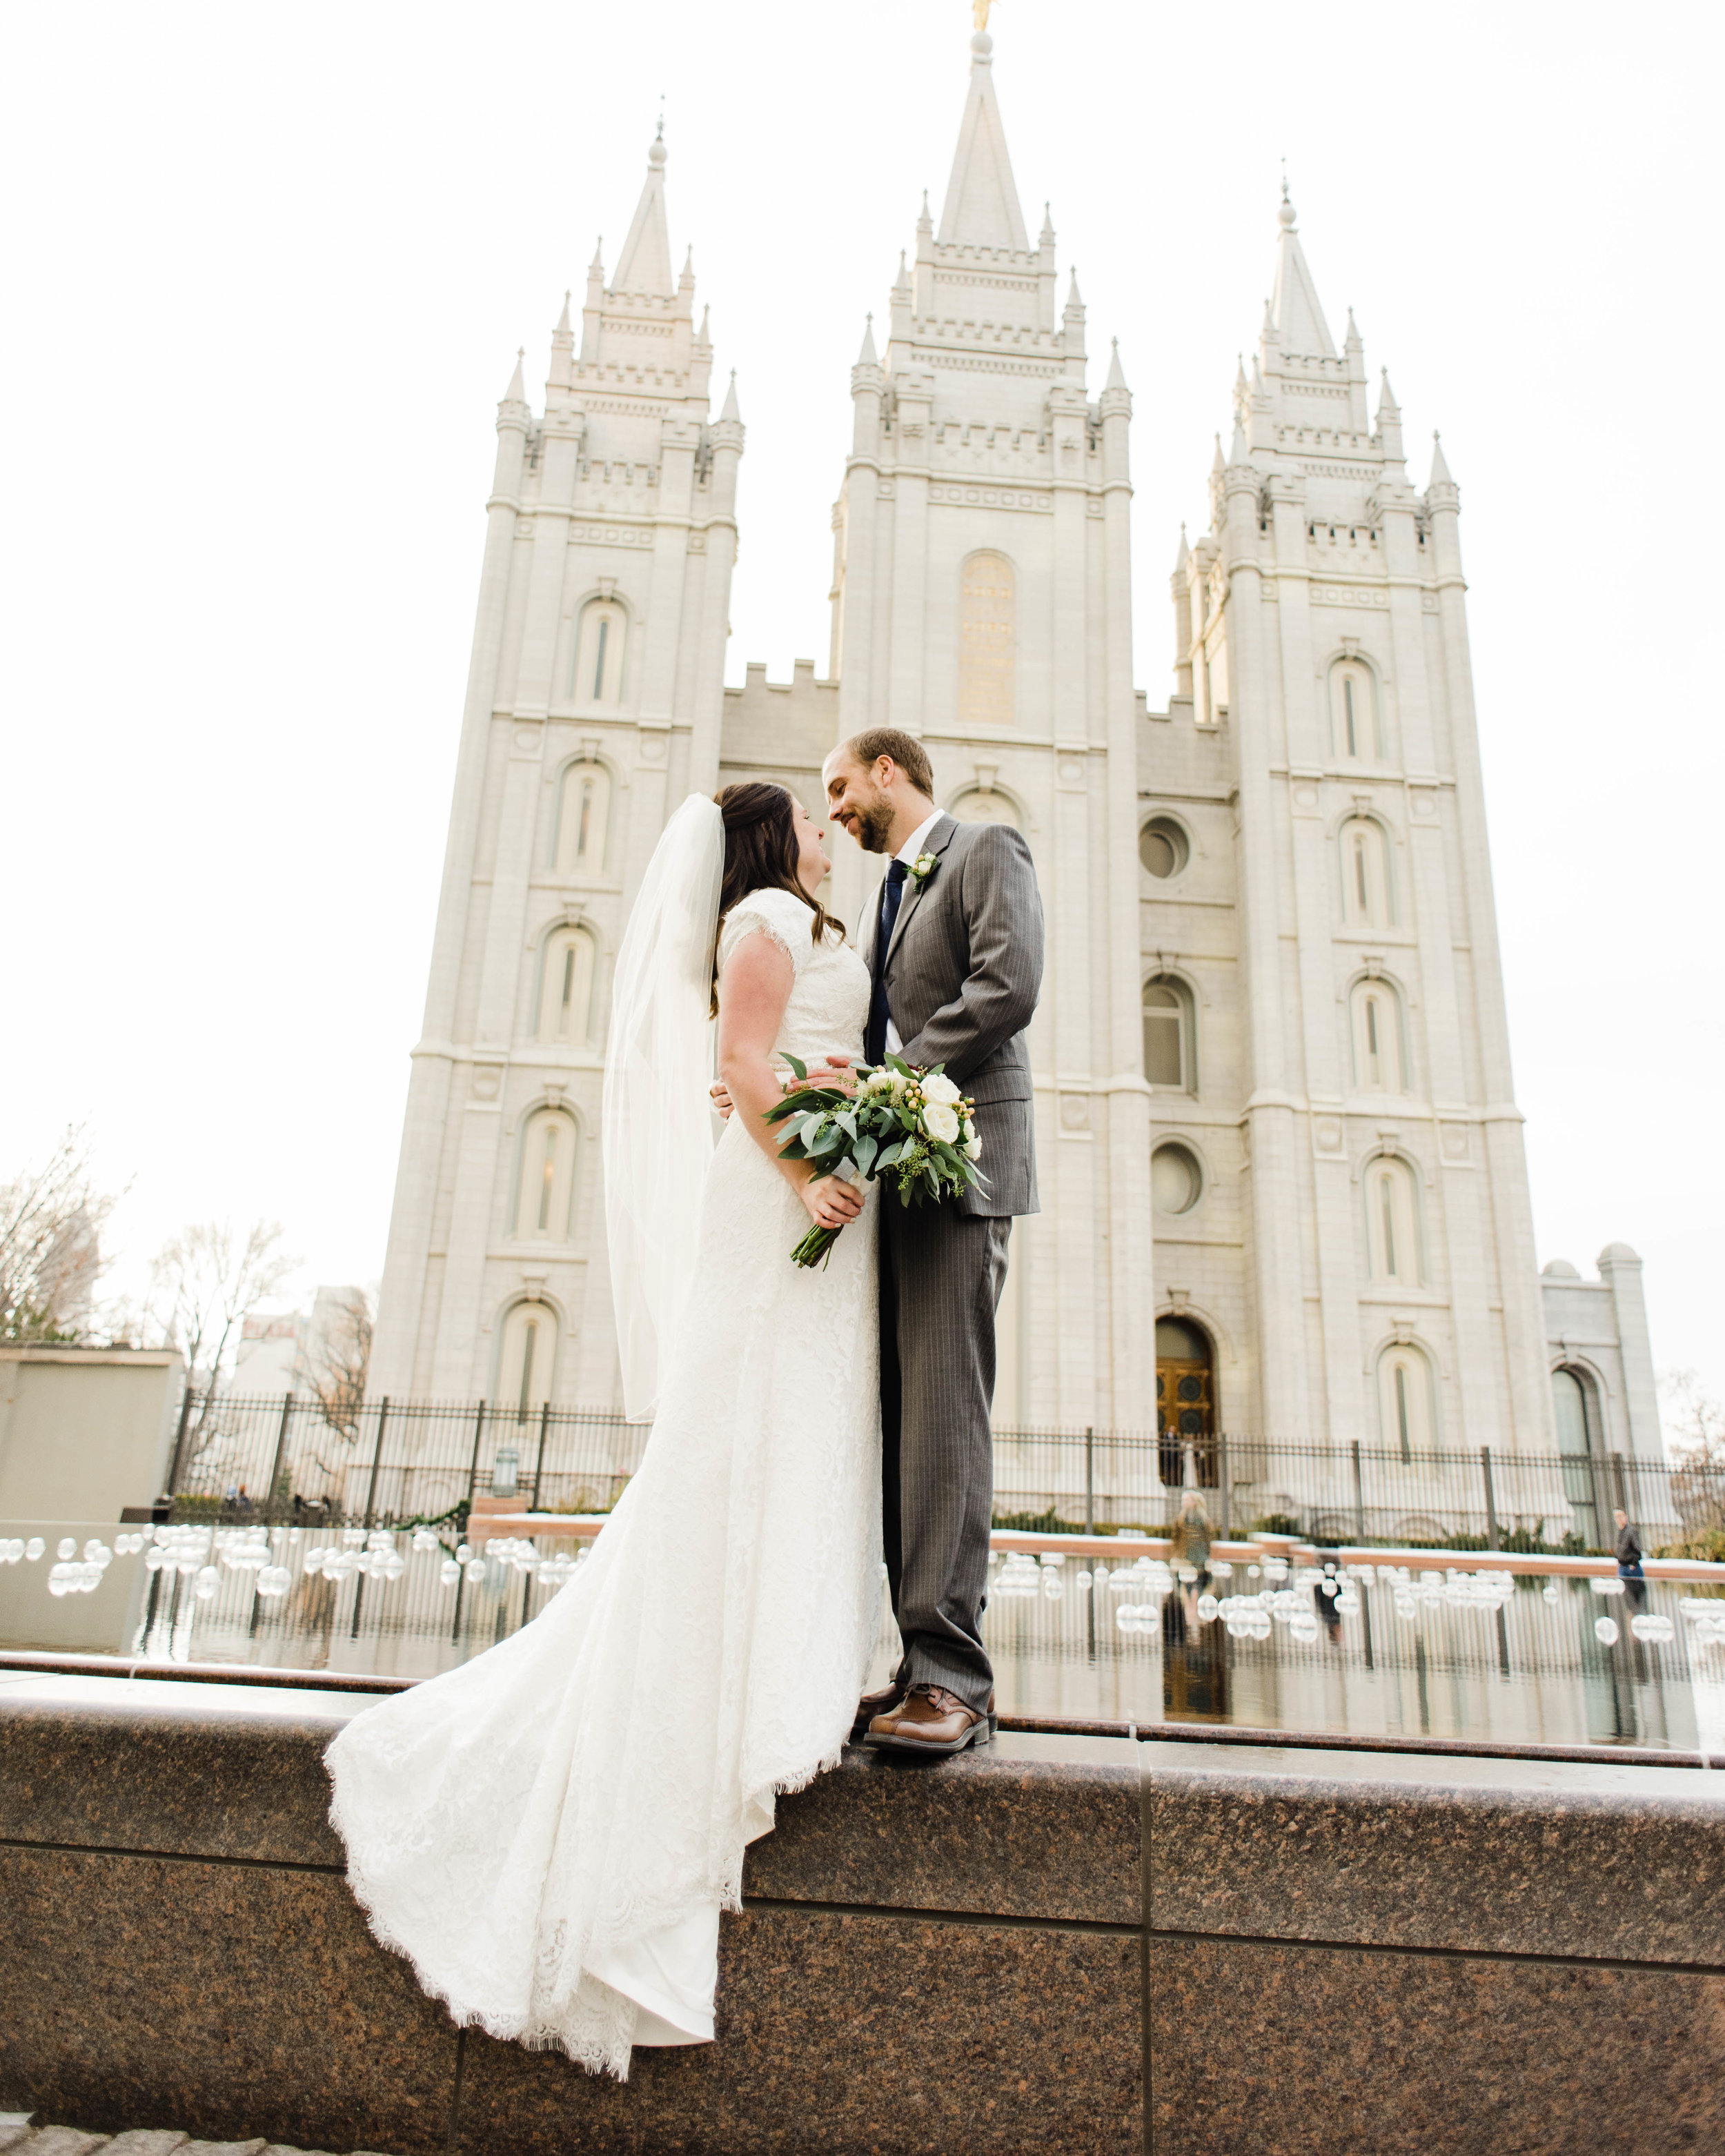 LINDSAY+BRAD-BRIDALS-Sadie_Banks_Photography-83.jpg